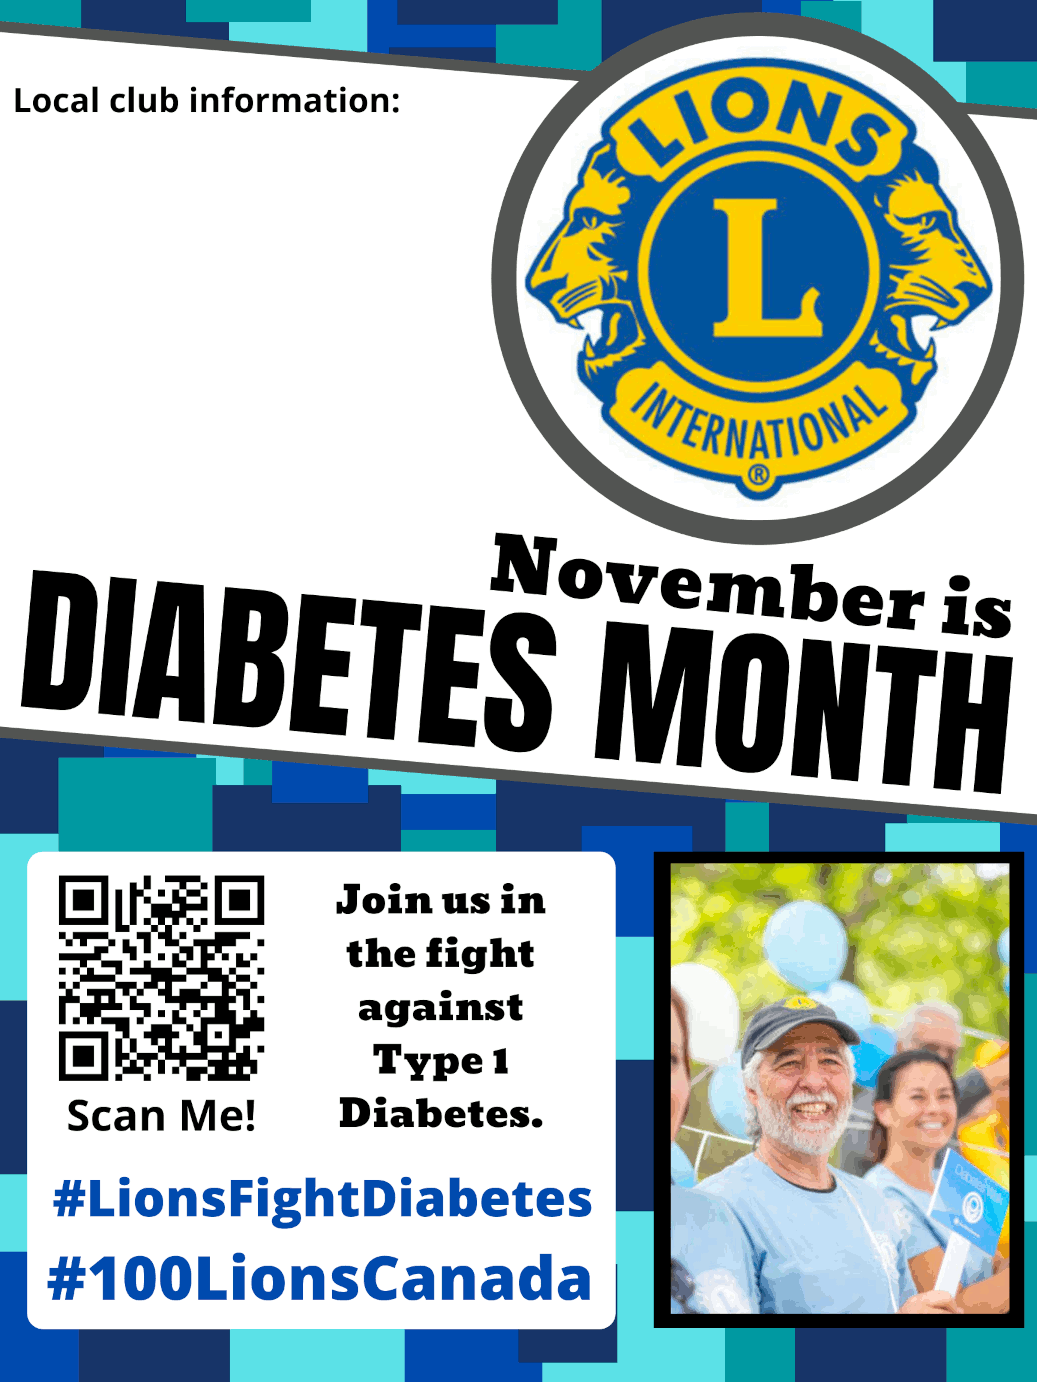 November is Diabetes Month poster